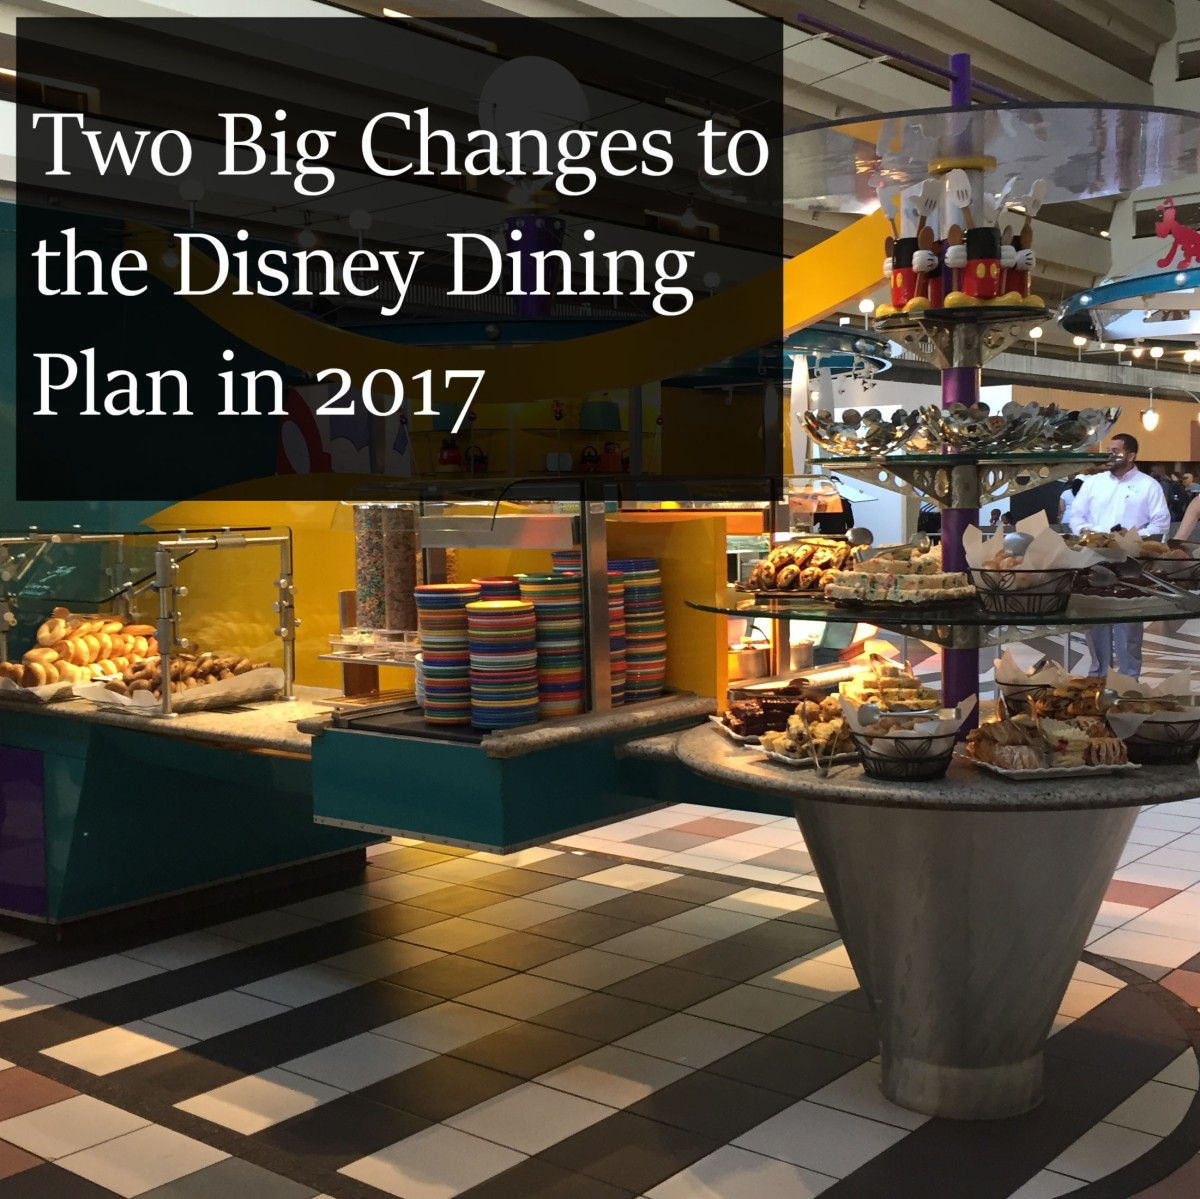 Two Big Changes to the Disney Dining Plan in 2017